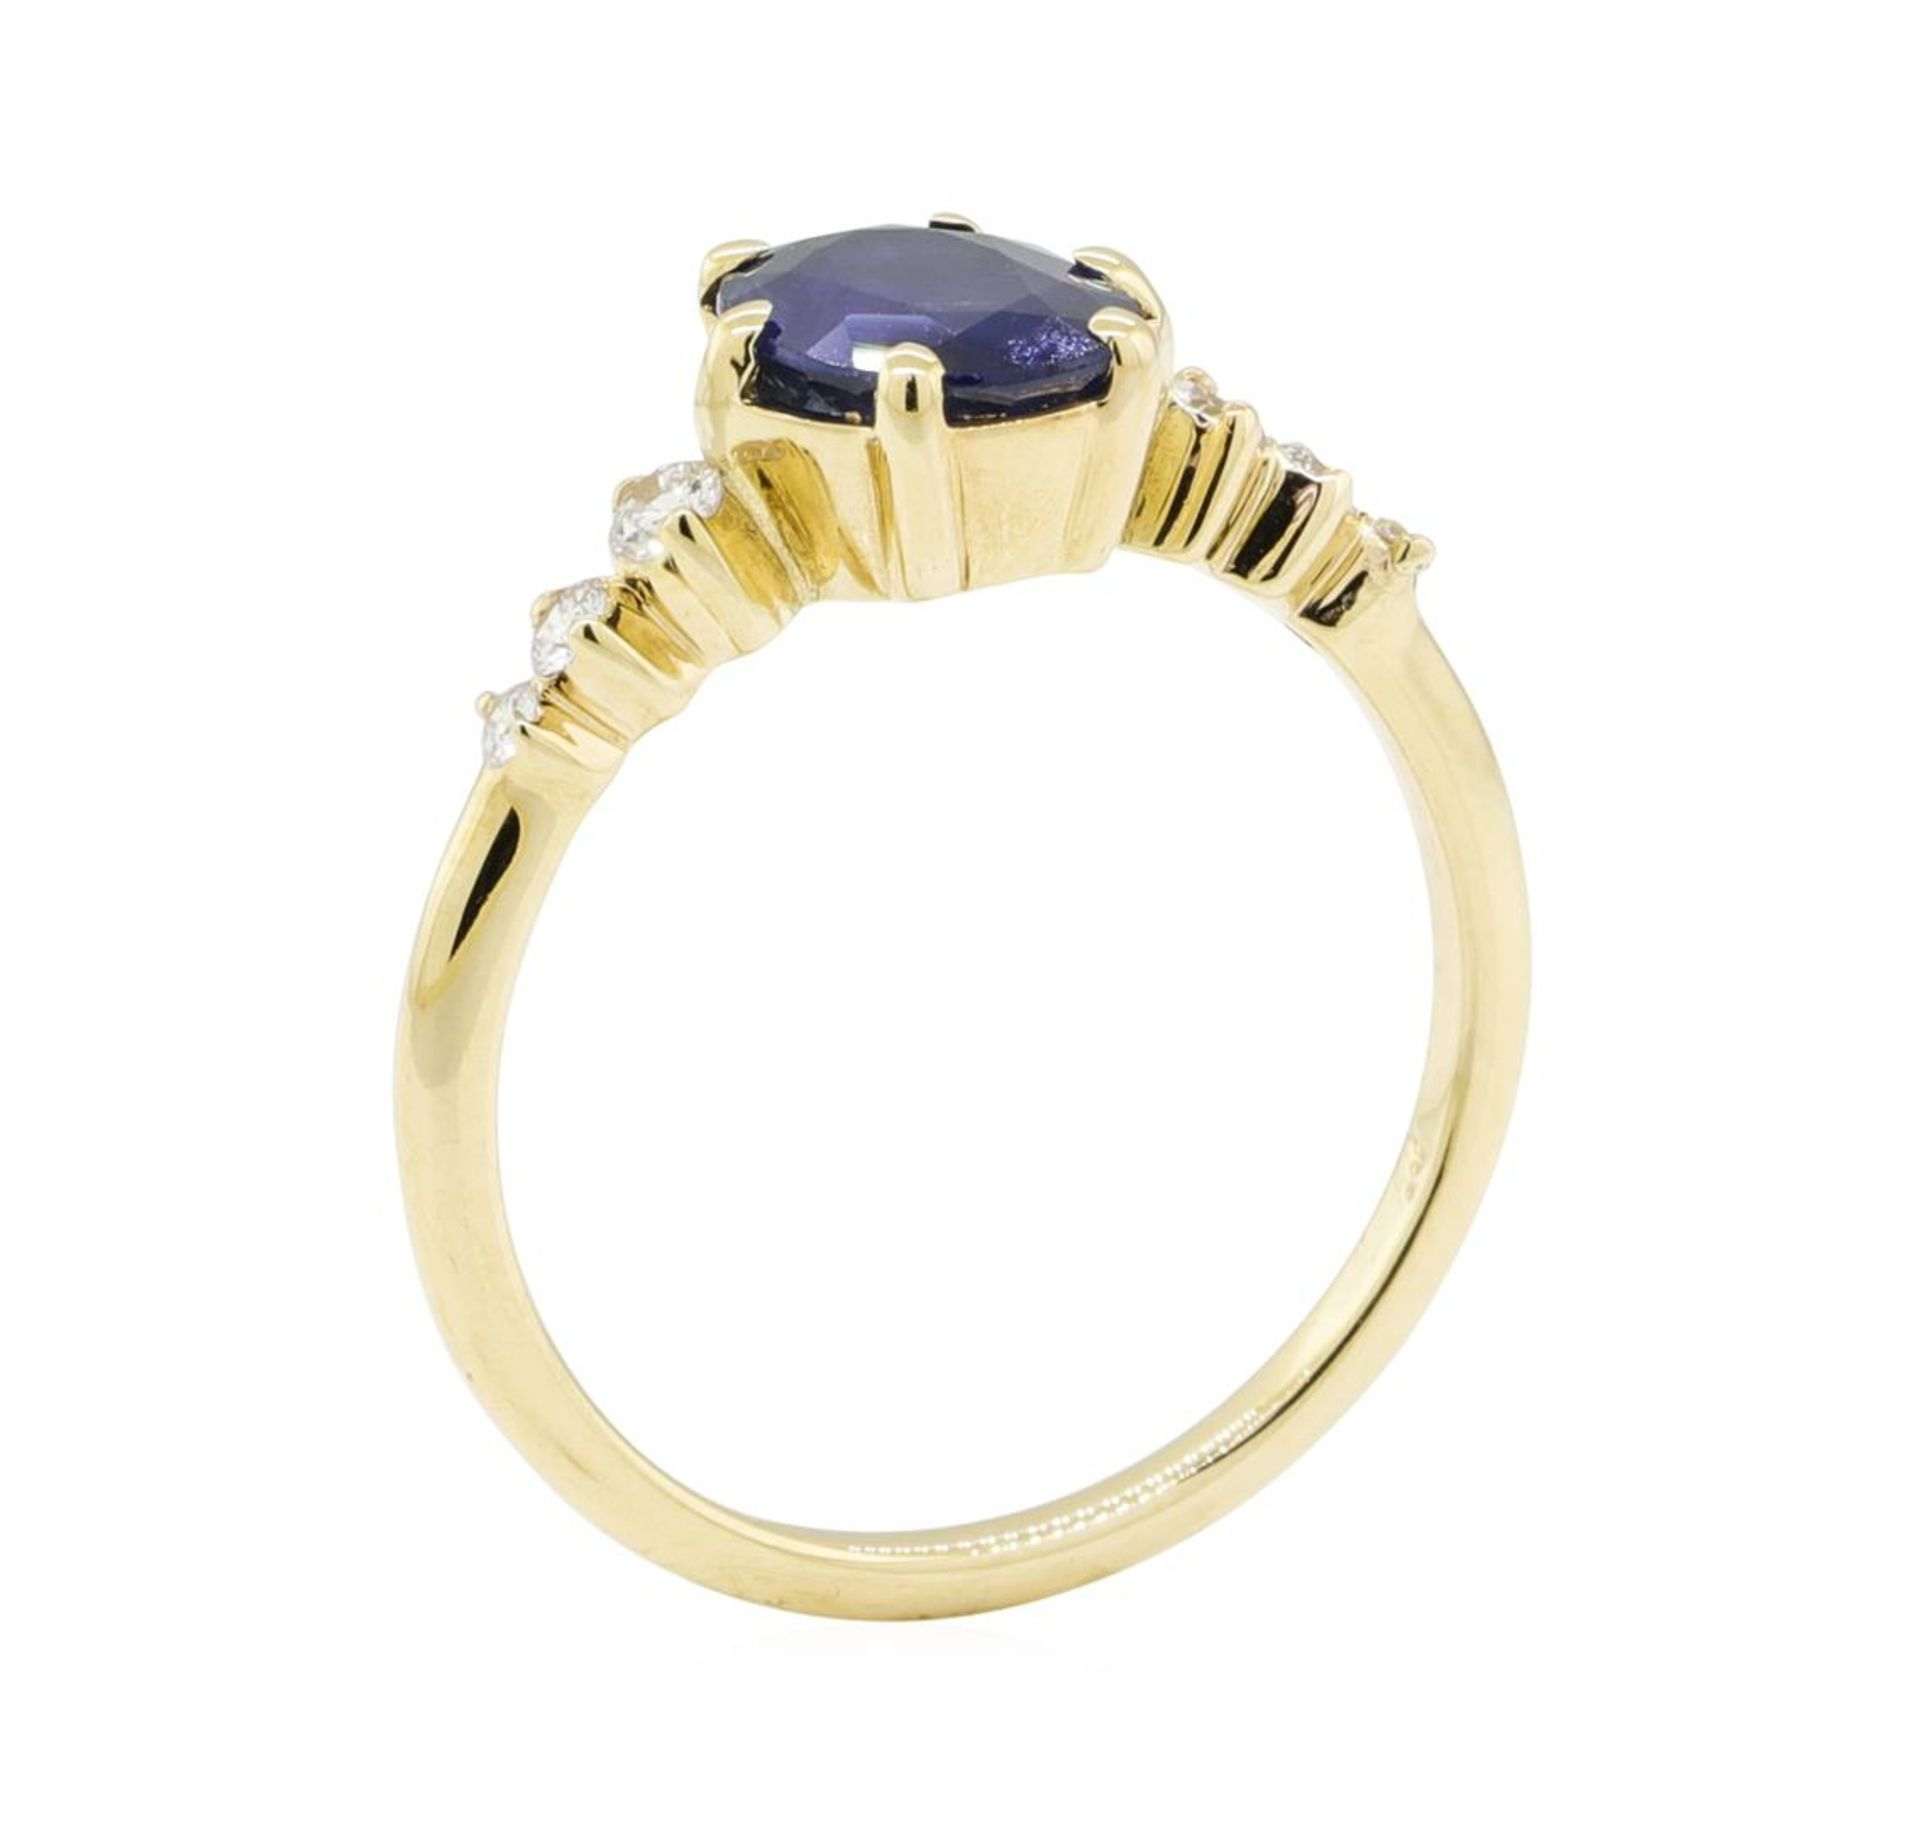 1.43ctw Sapphire and Diamond Ring - 14KT Yellow Gold - Image 4 of 4